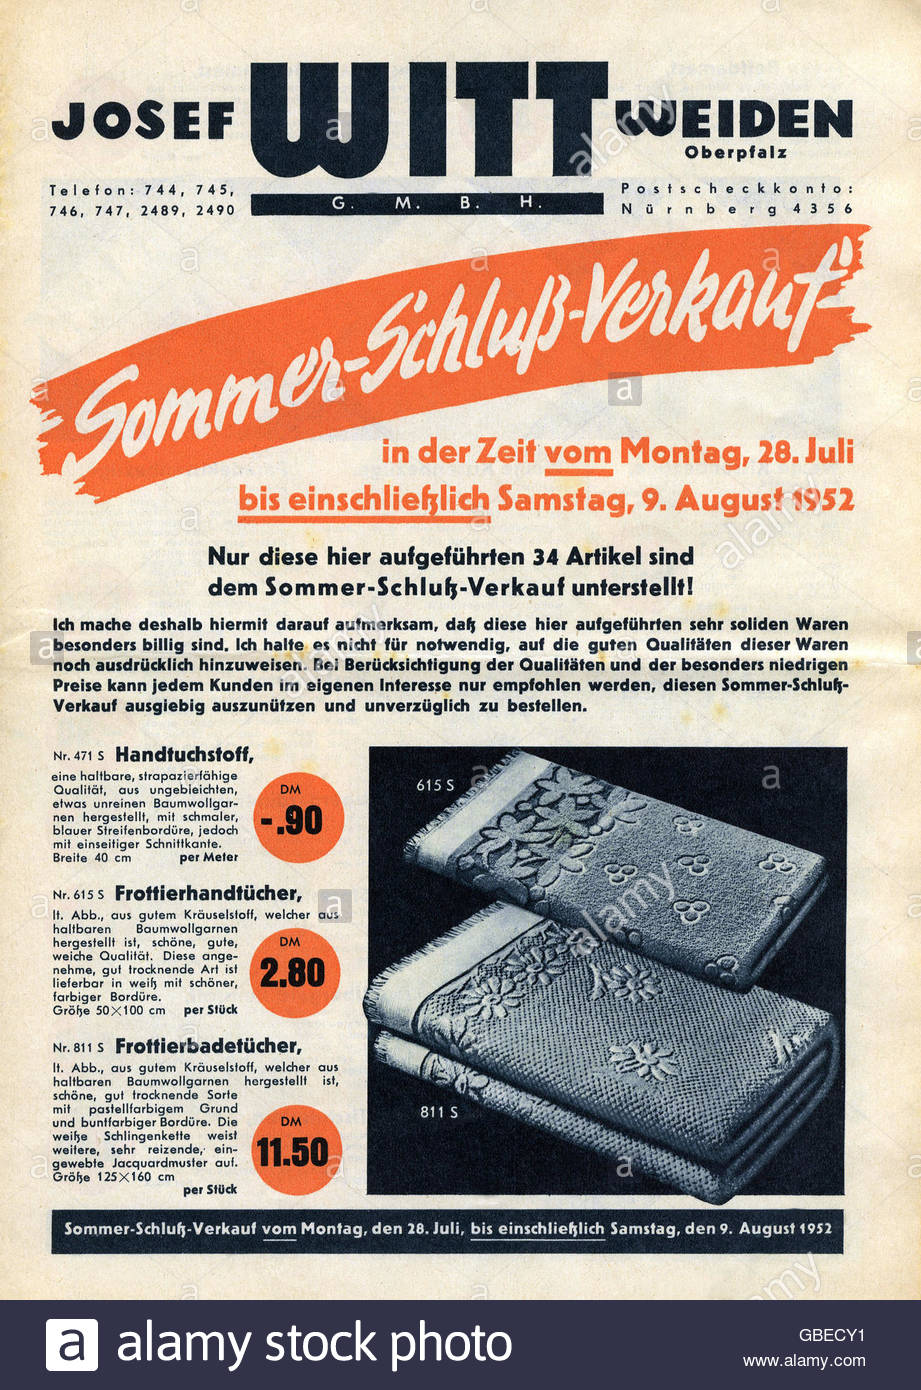 trade, catalogues and flysheets, catalogue of the Josef Witt GmbH, Weiden, cover, July / August 1952, Additional - Stock Image